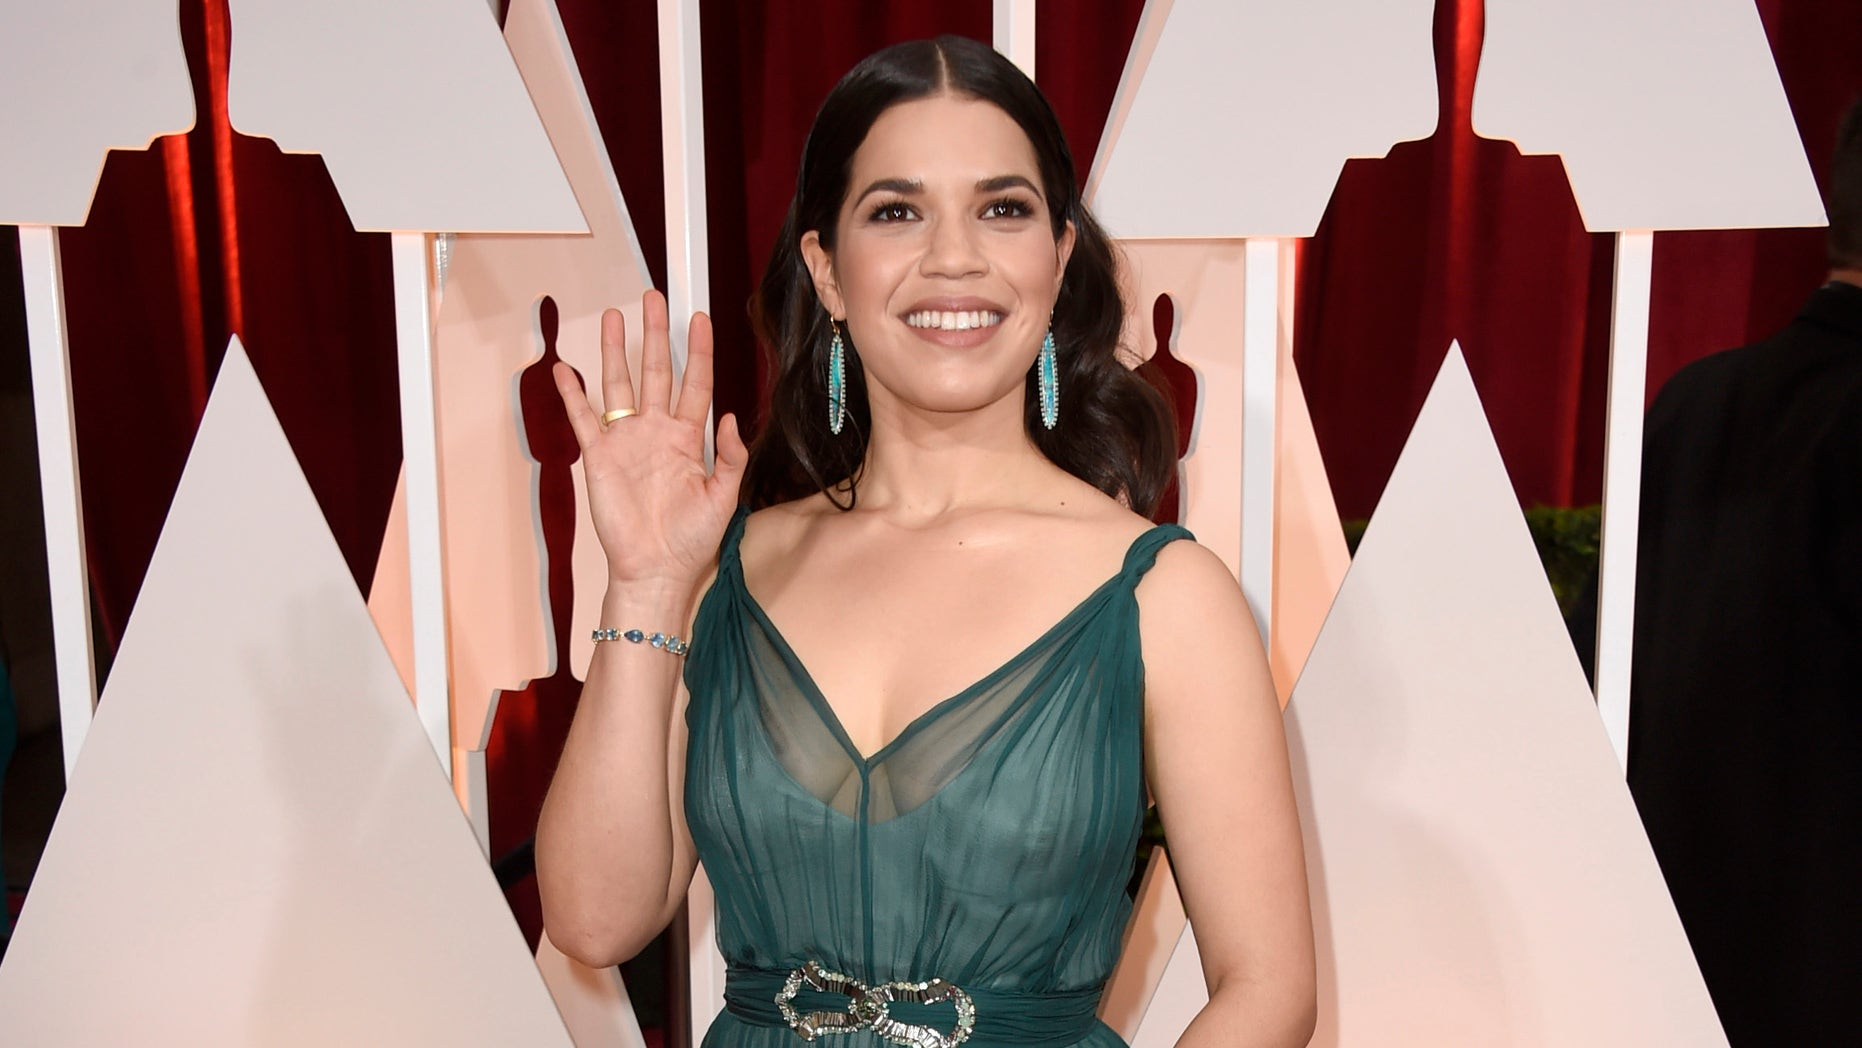 HOLLYWOOD, CA - FEBRUARY 22:  Actress America Ferrera attends the 87th Annual Academy Awards at Hollywood & Highland Center on February 22, 2015 in Hollywood, California.  (Photo by Frazer Harrison/Getty Images)